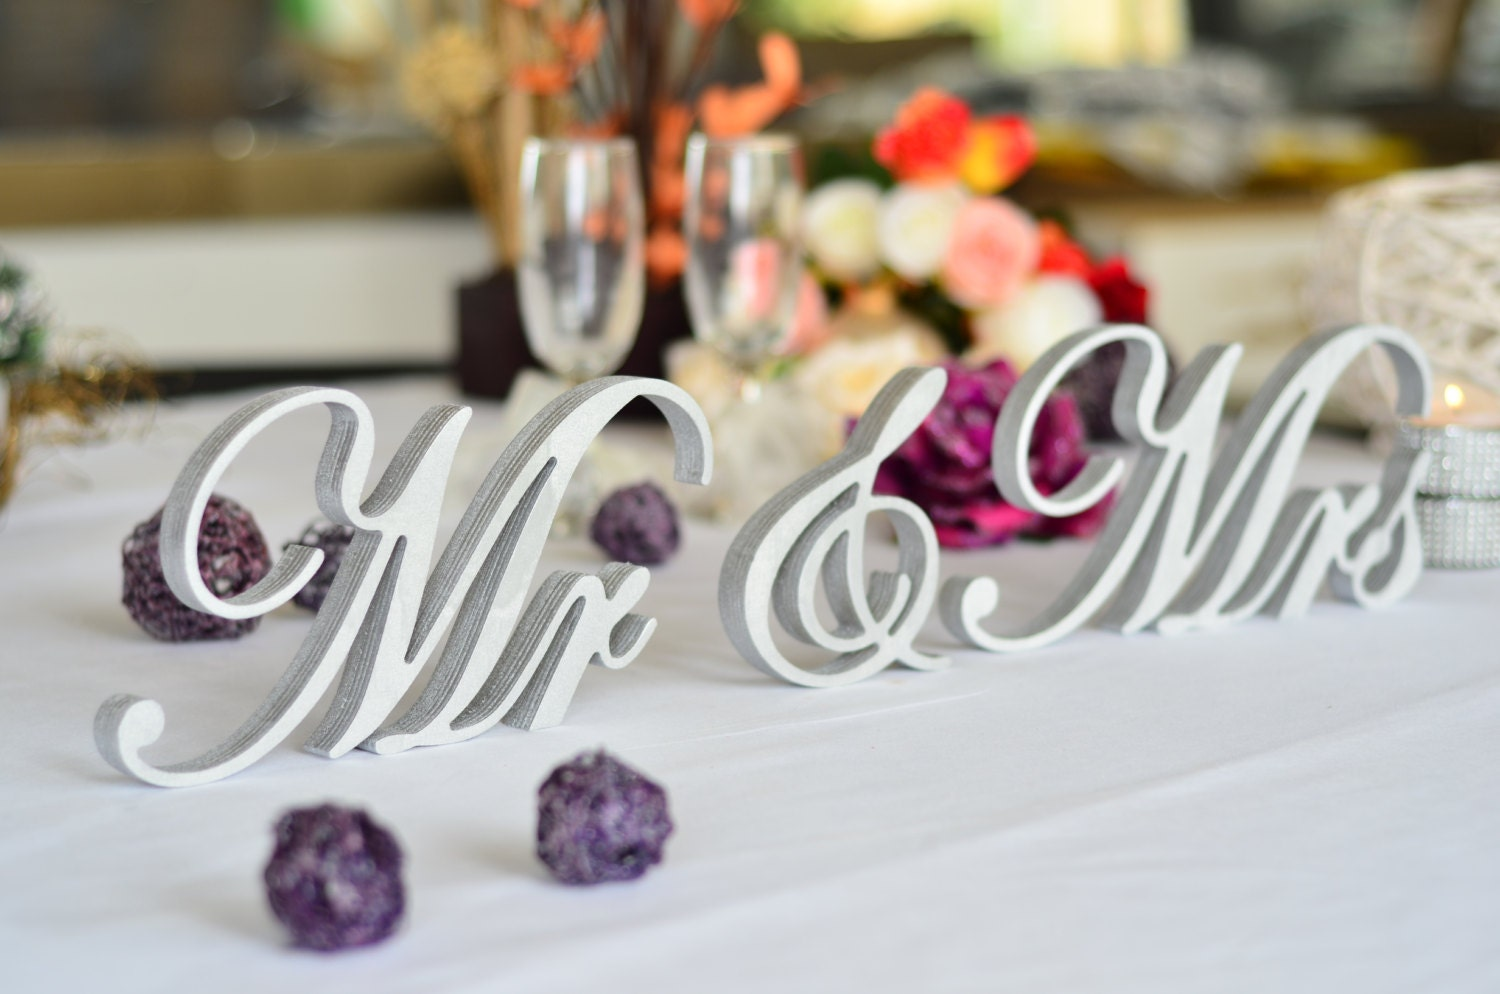 Mr. and. Mrs. signs. Wedding signs. Top table centerpice.